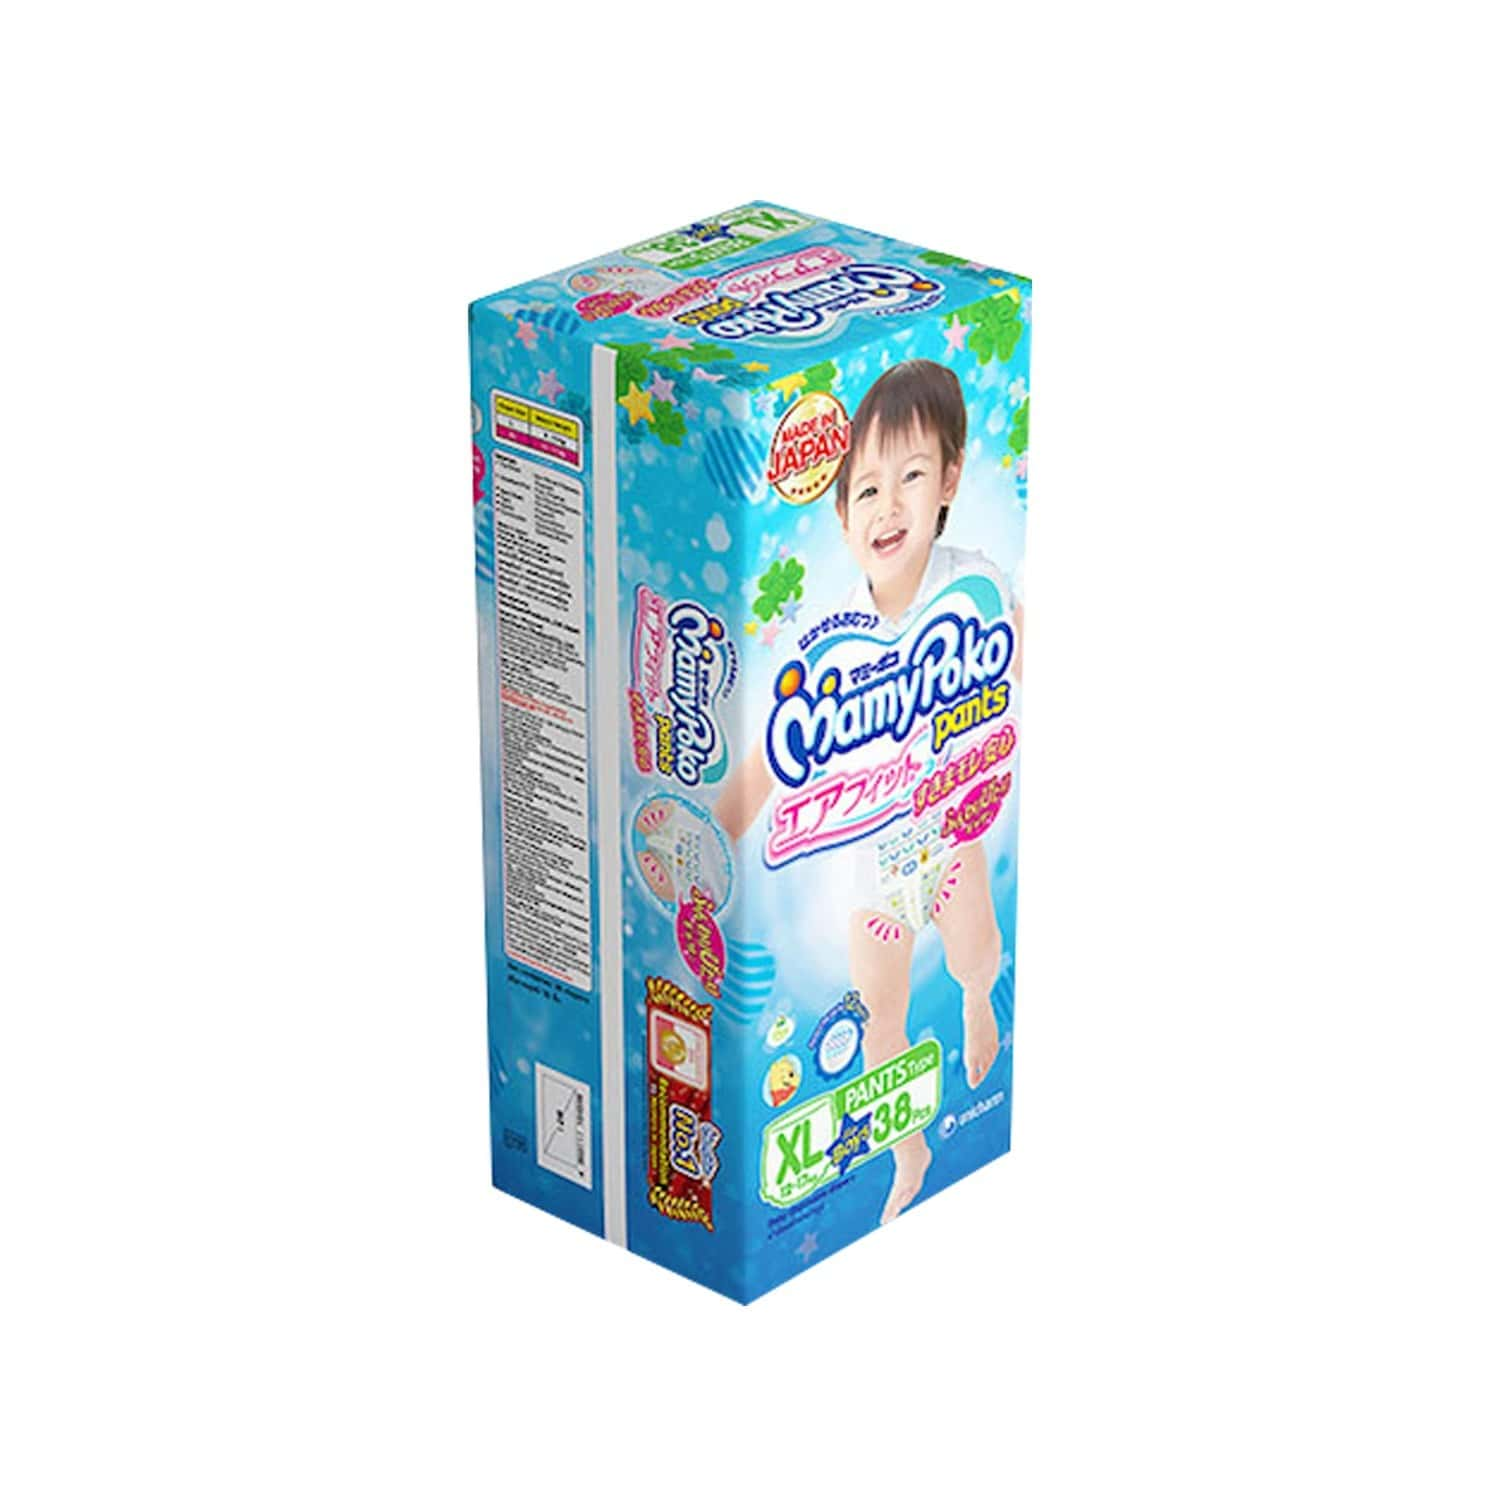 Mamypoko Pants Airfit Diapers Ultra Premium For Boys Extra Large Size Pack Of 38